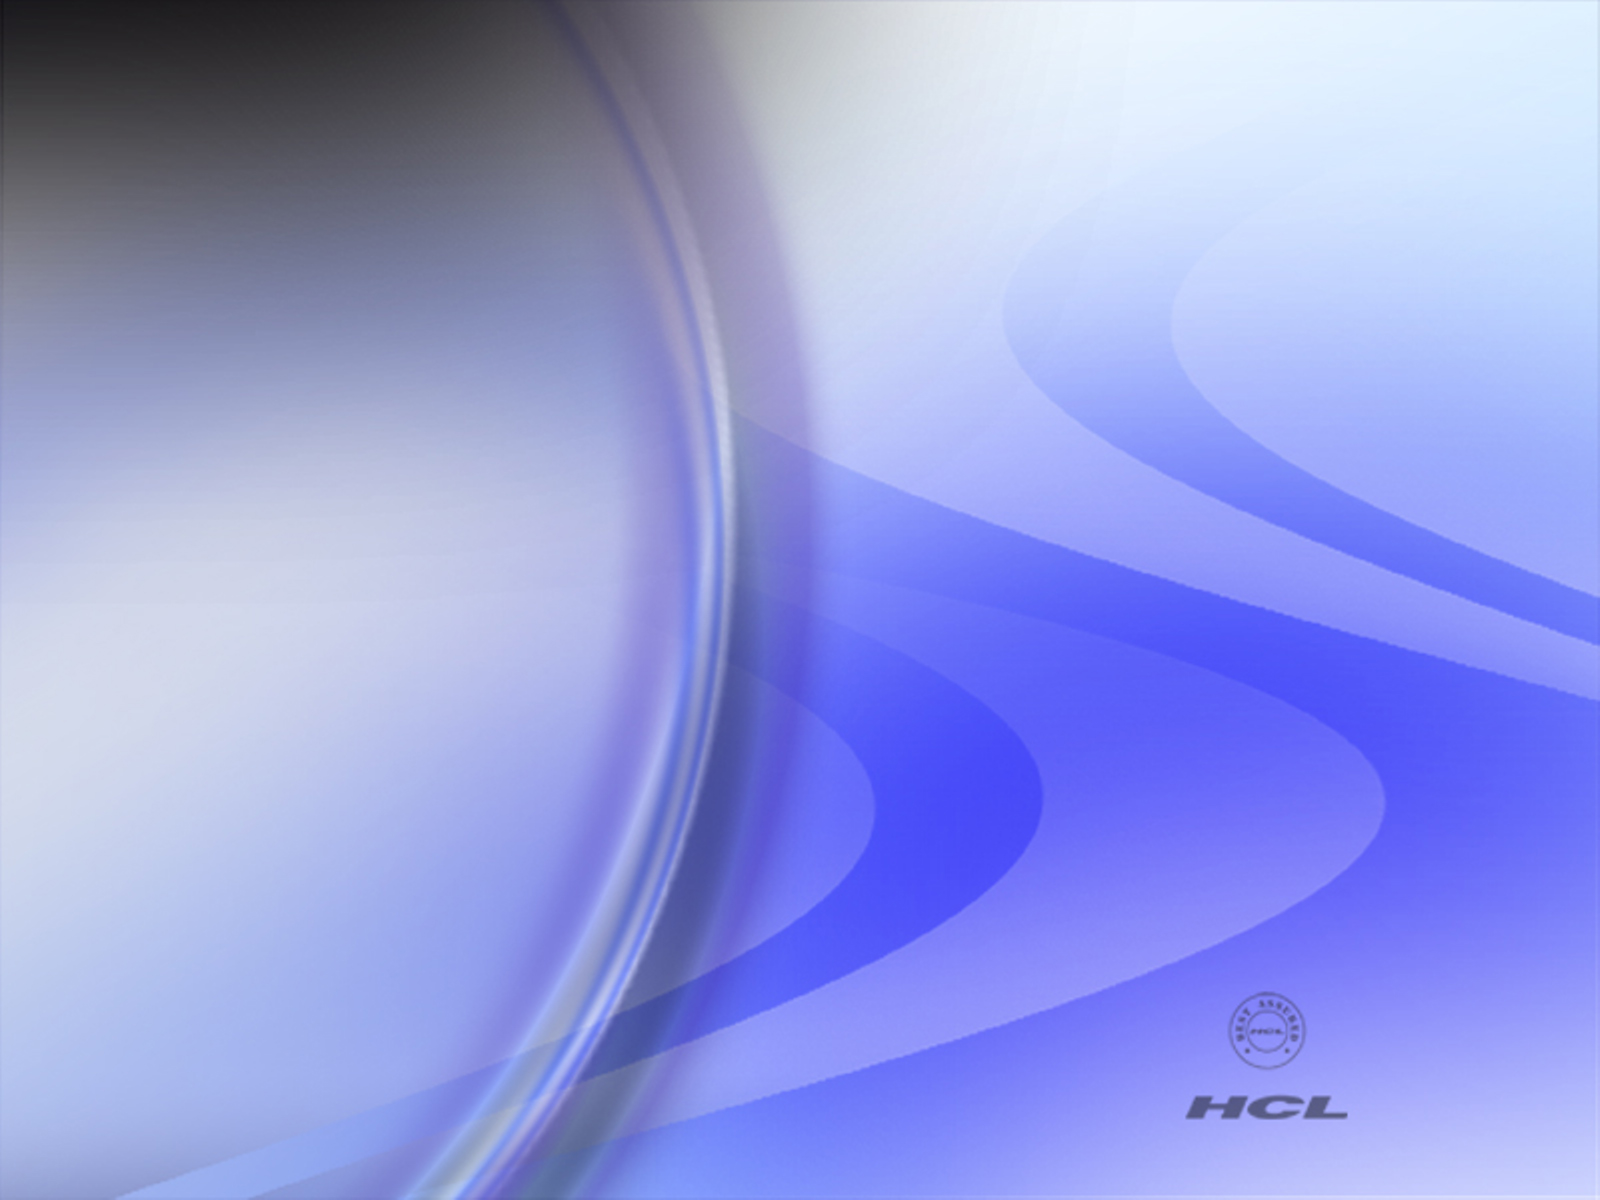 3d Animated Wallpaper Windows 8 Hcl 2 Wallpapers Hcl 2 Stock Photos